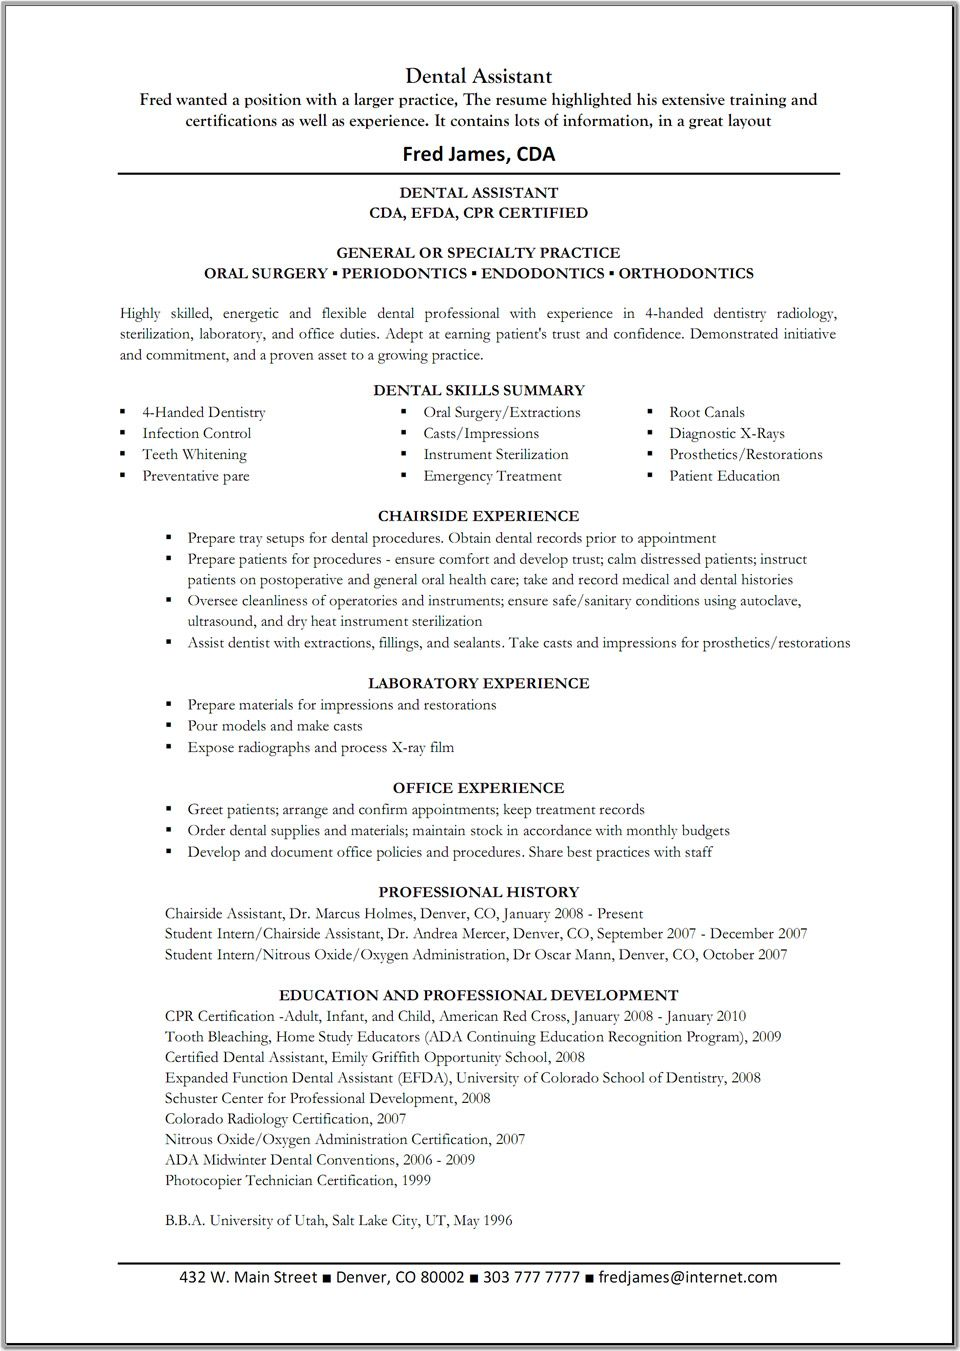 Dental Hygiene Resume Template Dental Assistant Resume Template  Great Resume Templates  Dental